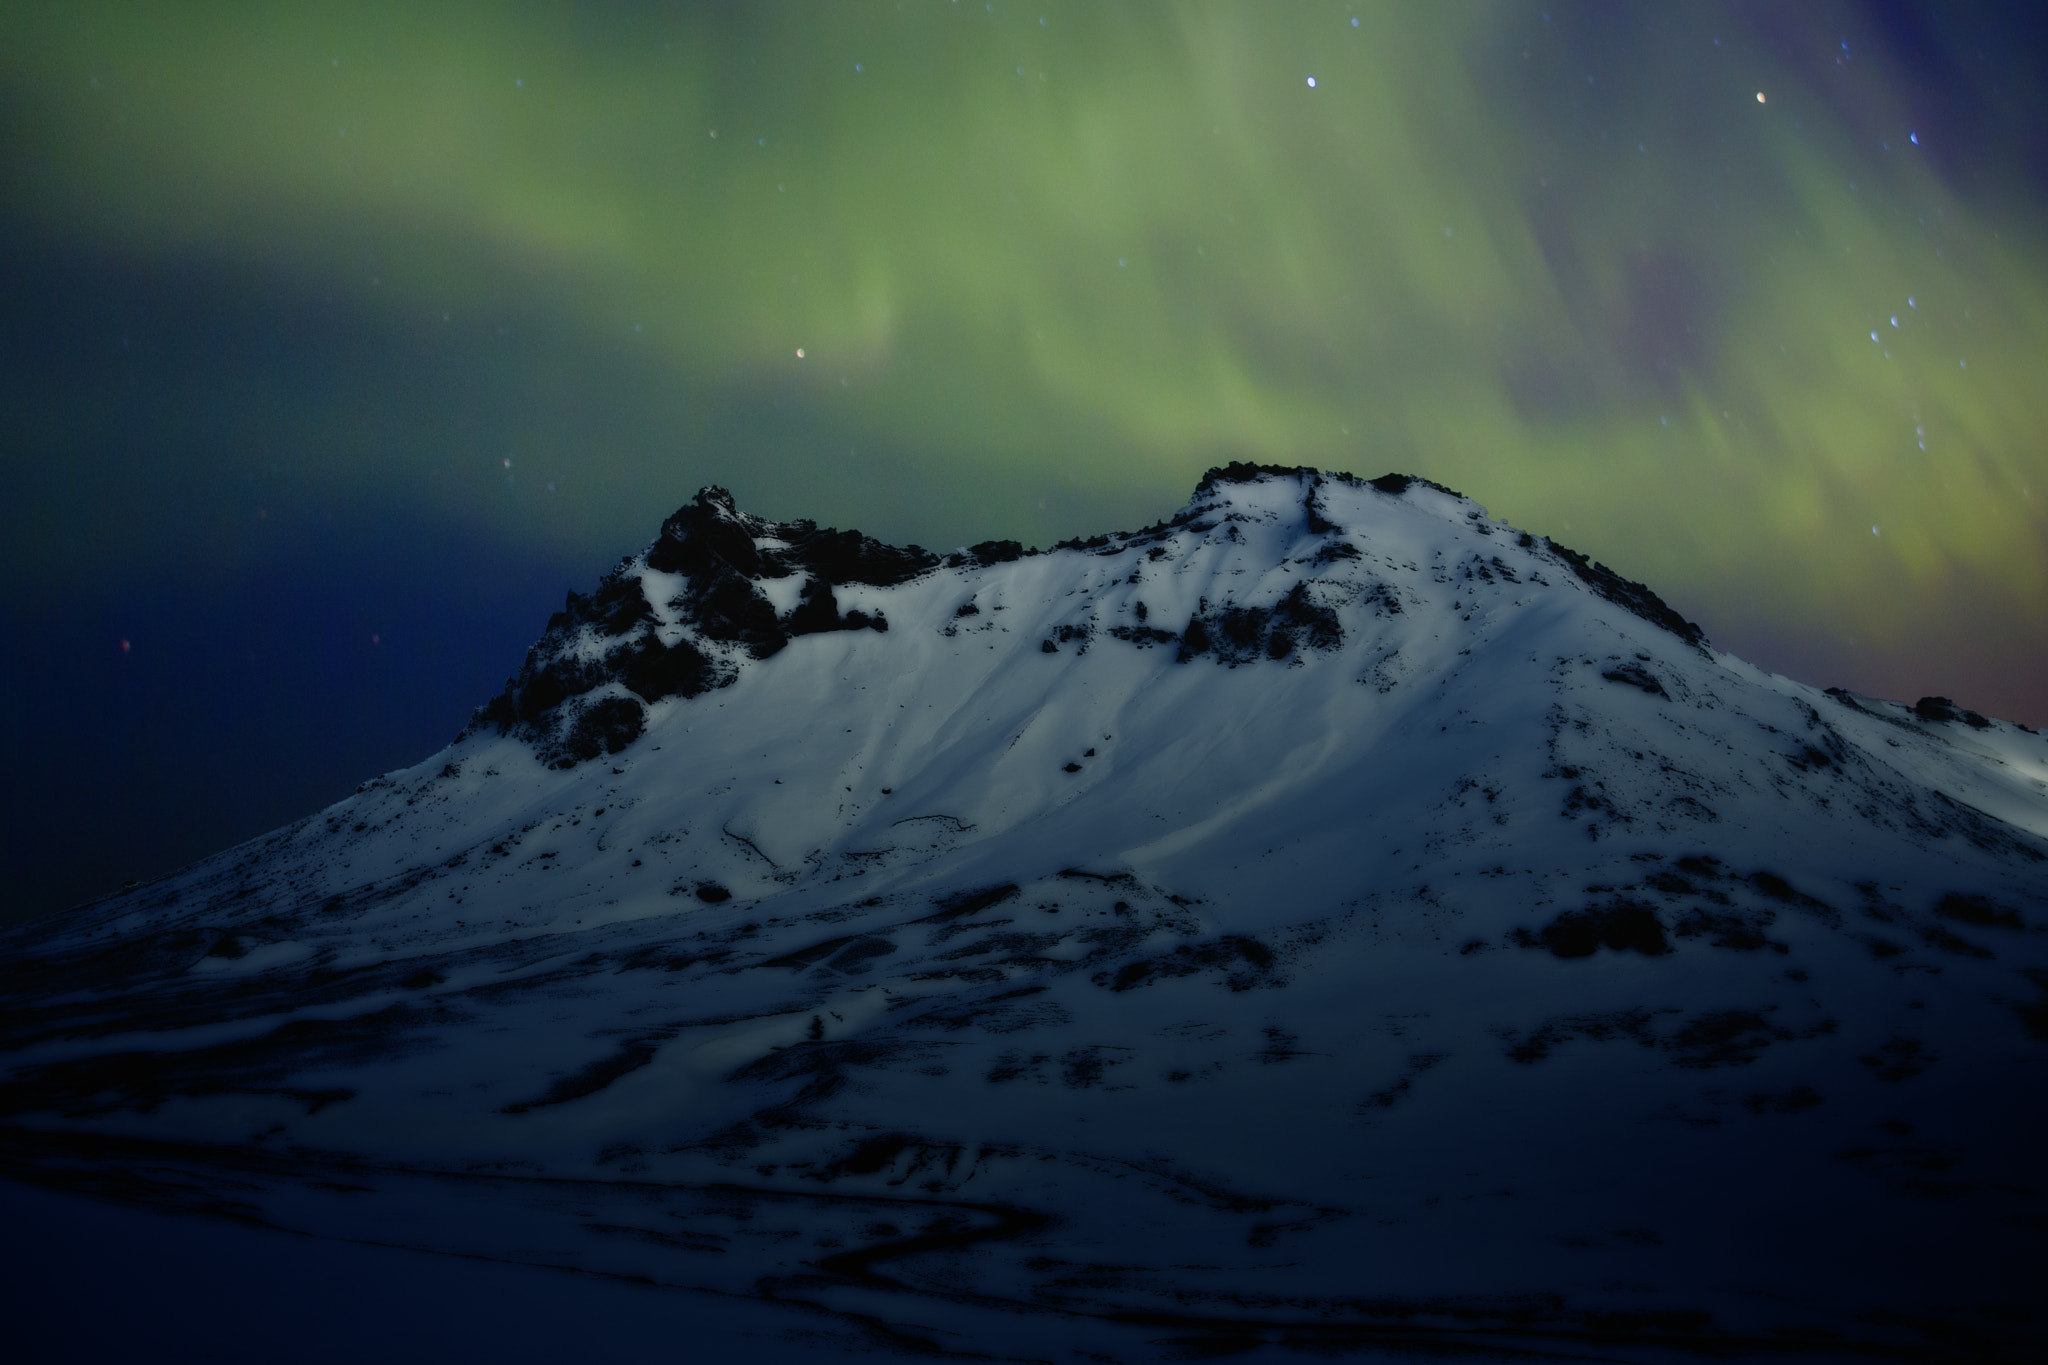 Photograph Aurora in the mountains by Magdalena Warmuz-Dent on 500px